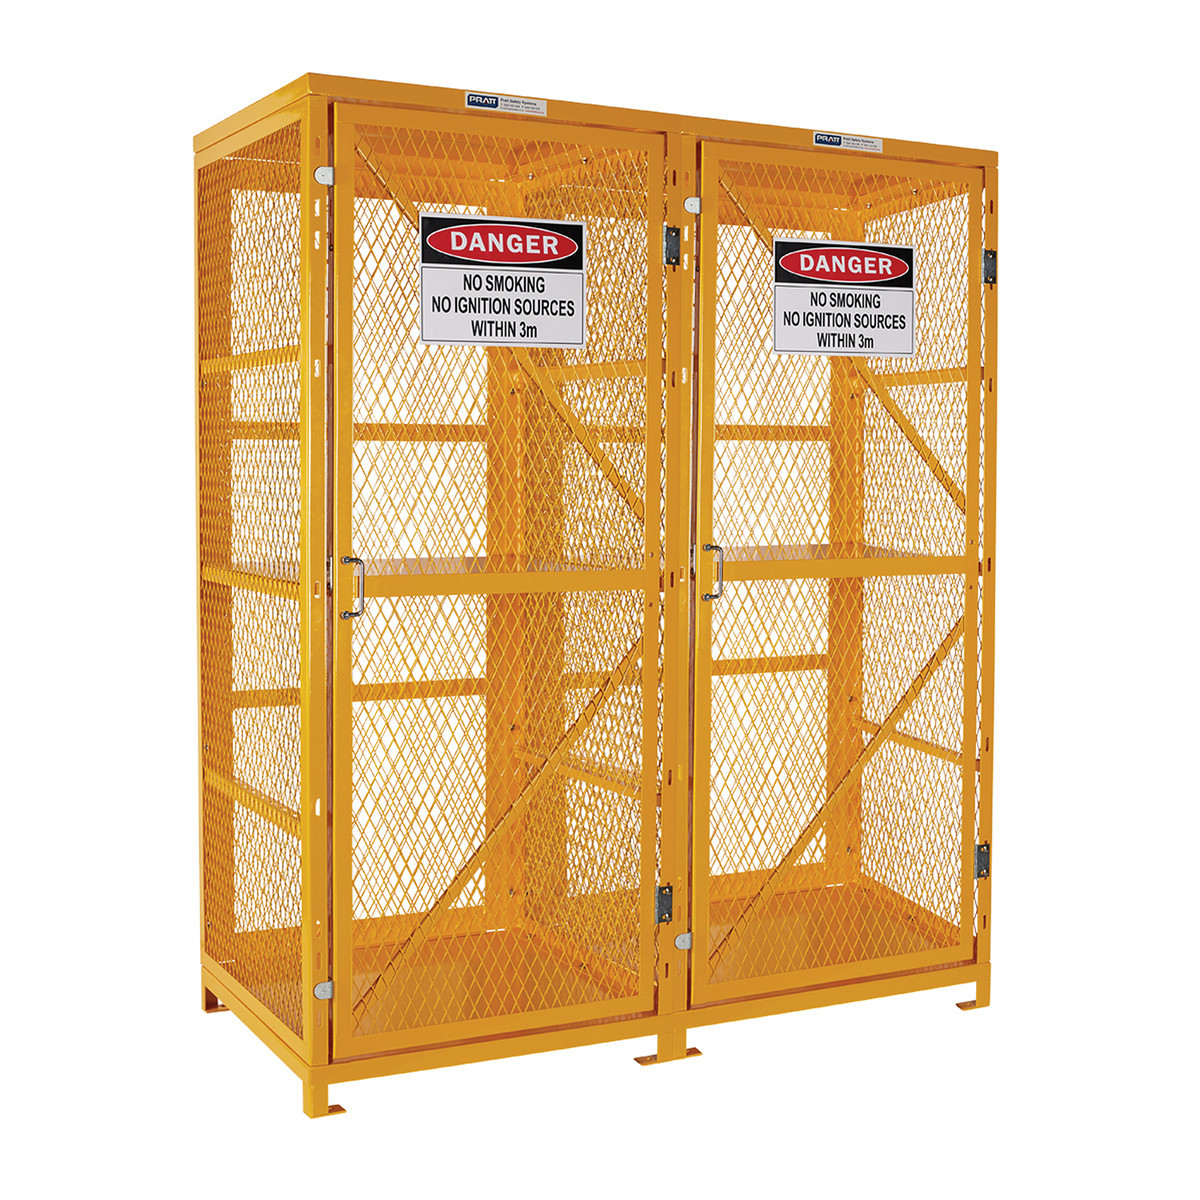 Flat Packed Forklift Storage Cage - 2 Storage Levels Up To 16 Forklift Cylinders